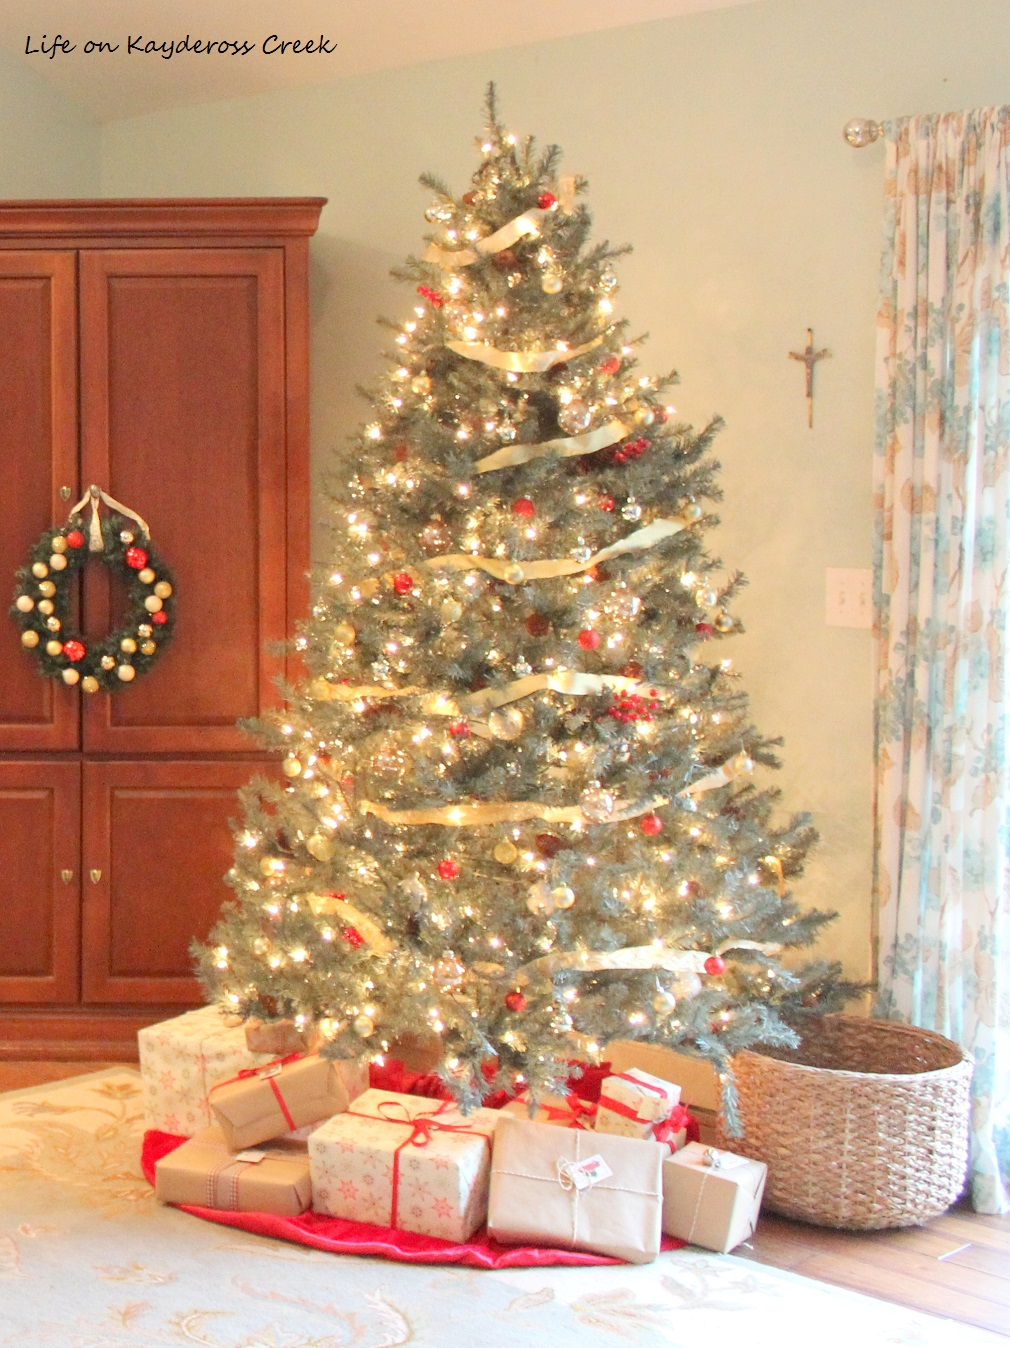 Christmas Tree Blog Hop - Tree Vignette - Master Bedroom - Life on Kaydeross Creek